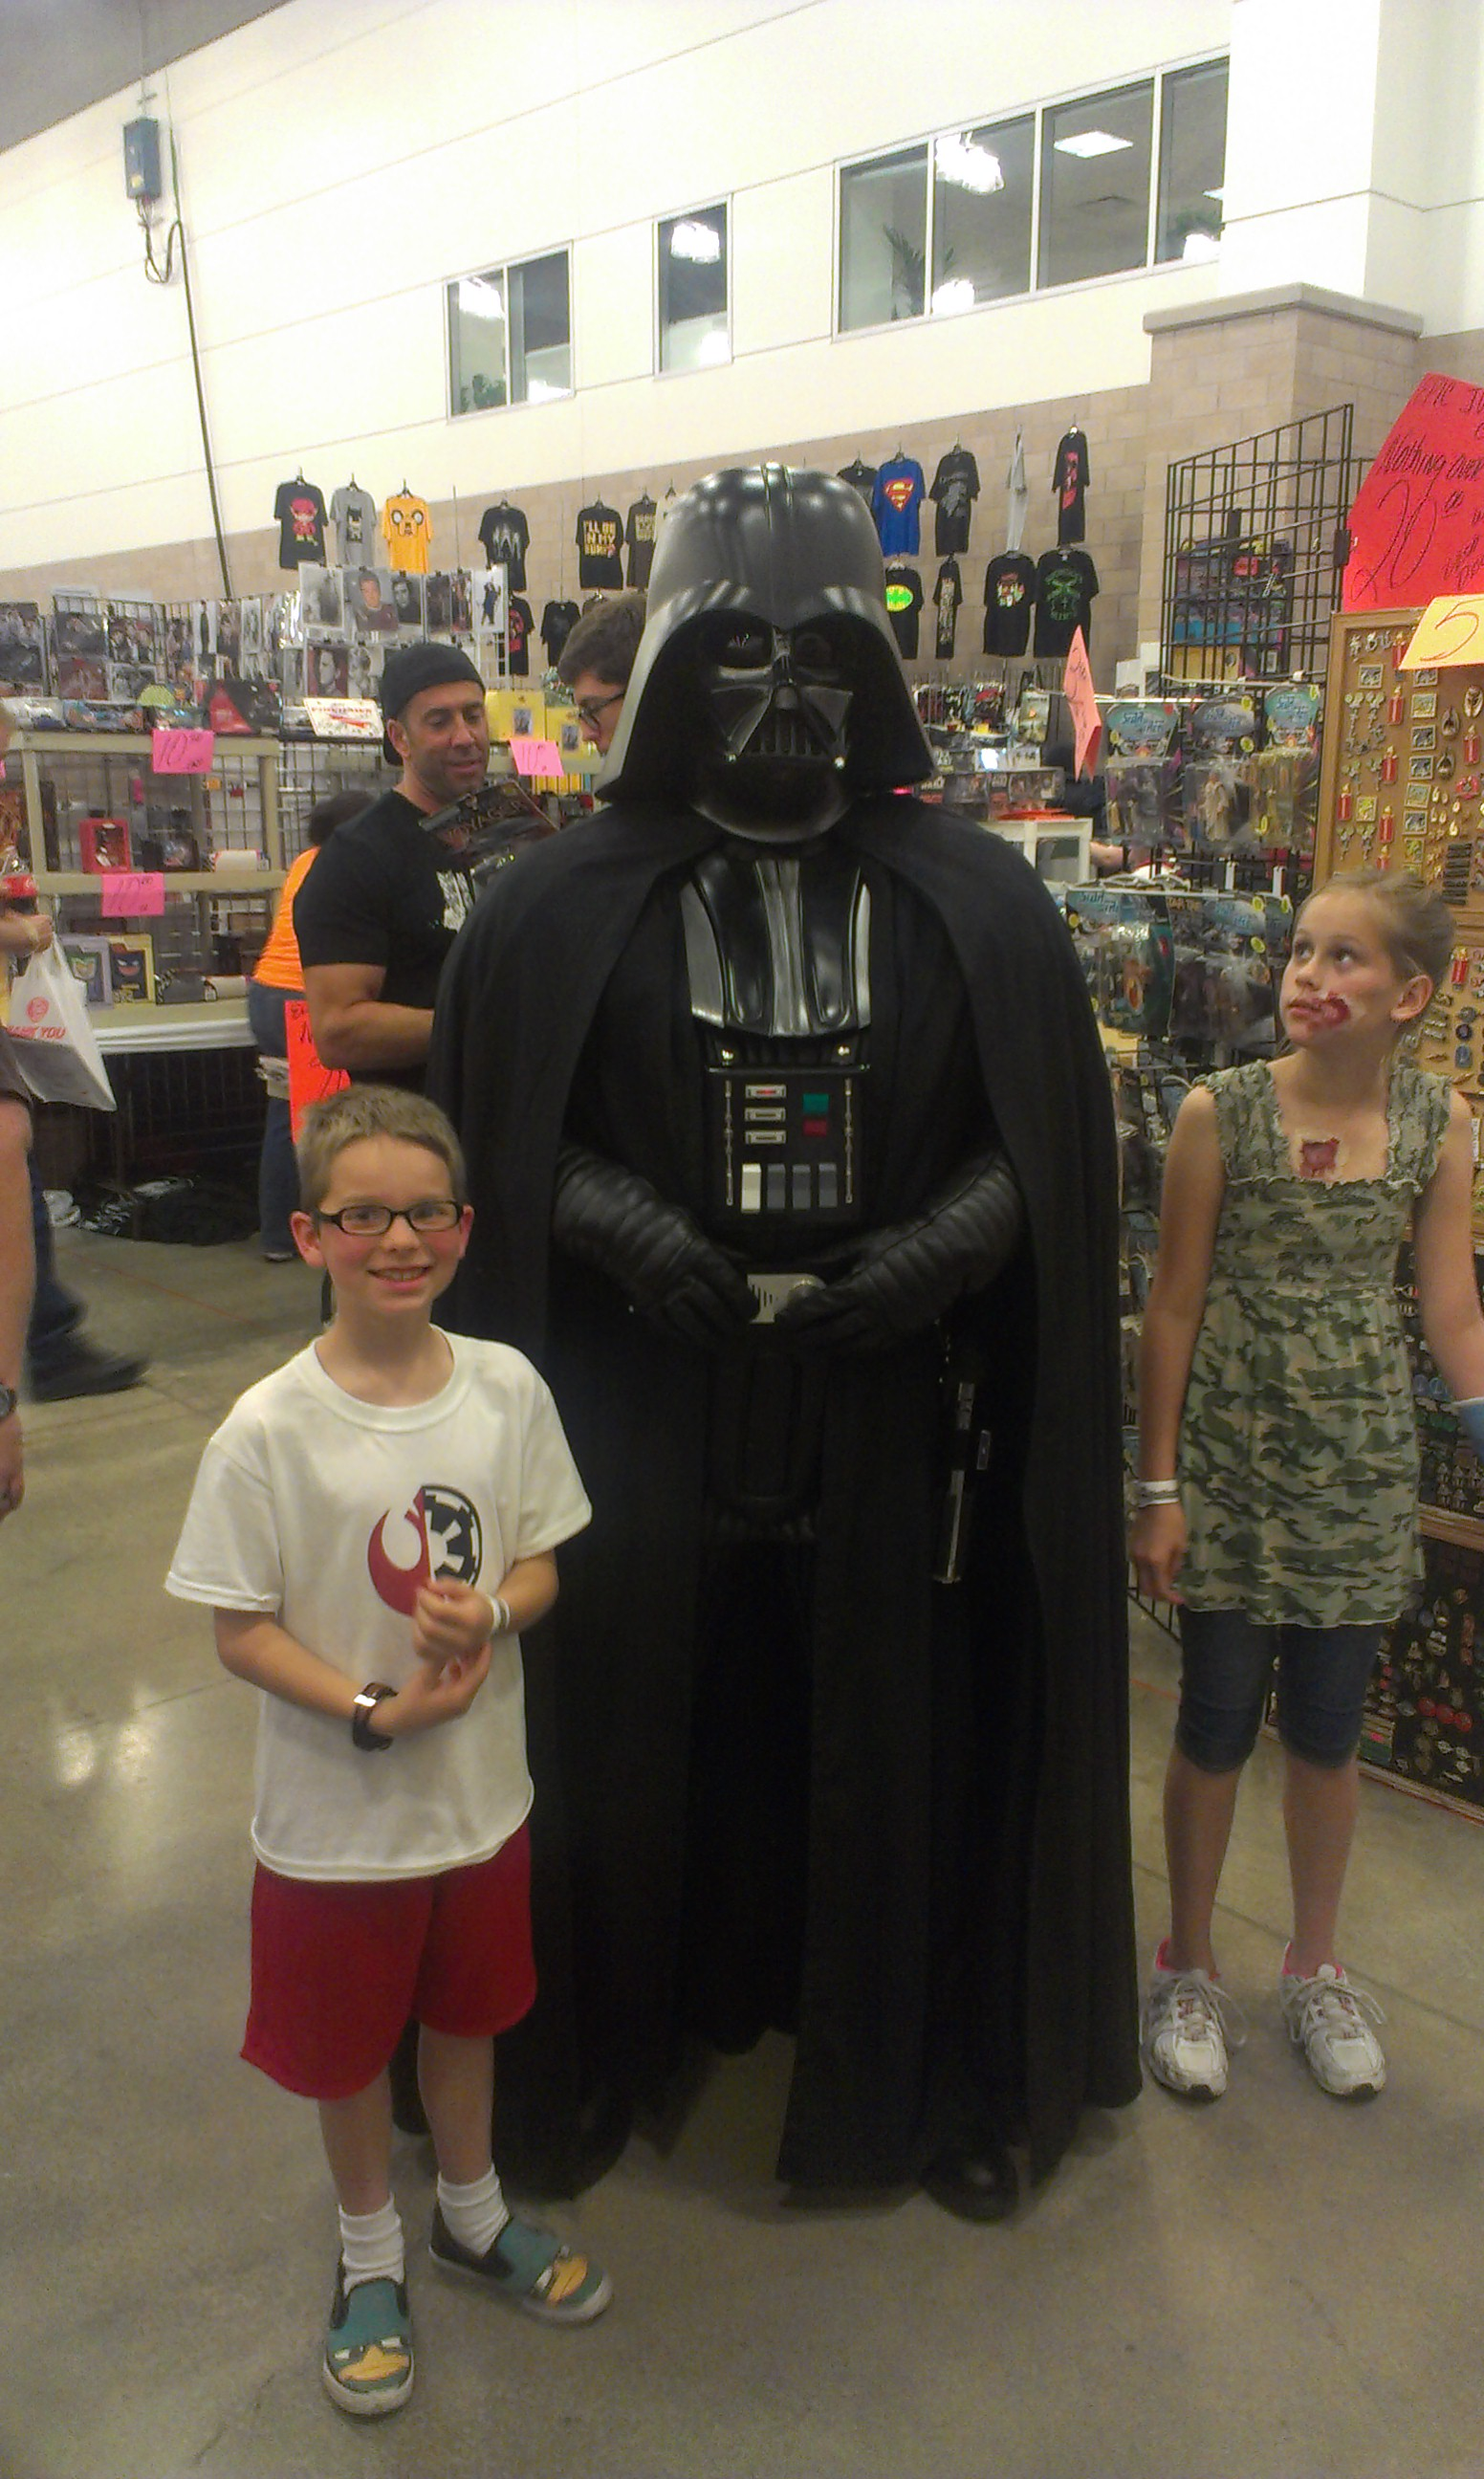 Colby wanted to force choke Darth Vader, but it was hard to get a picture b/c a large crowd was gathering around.